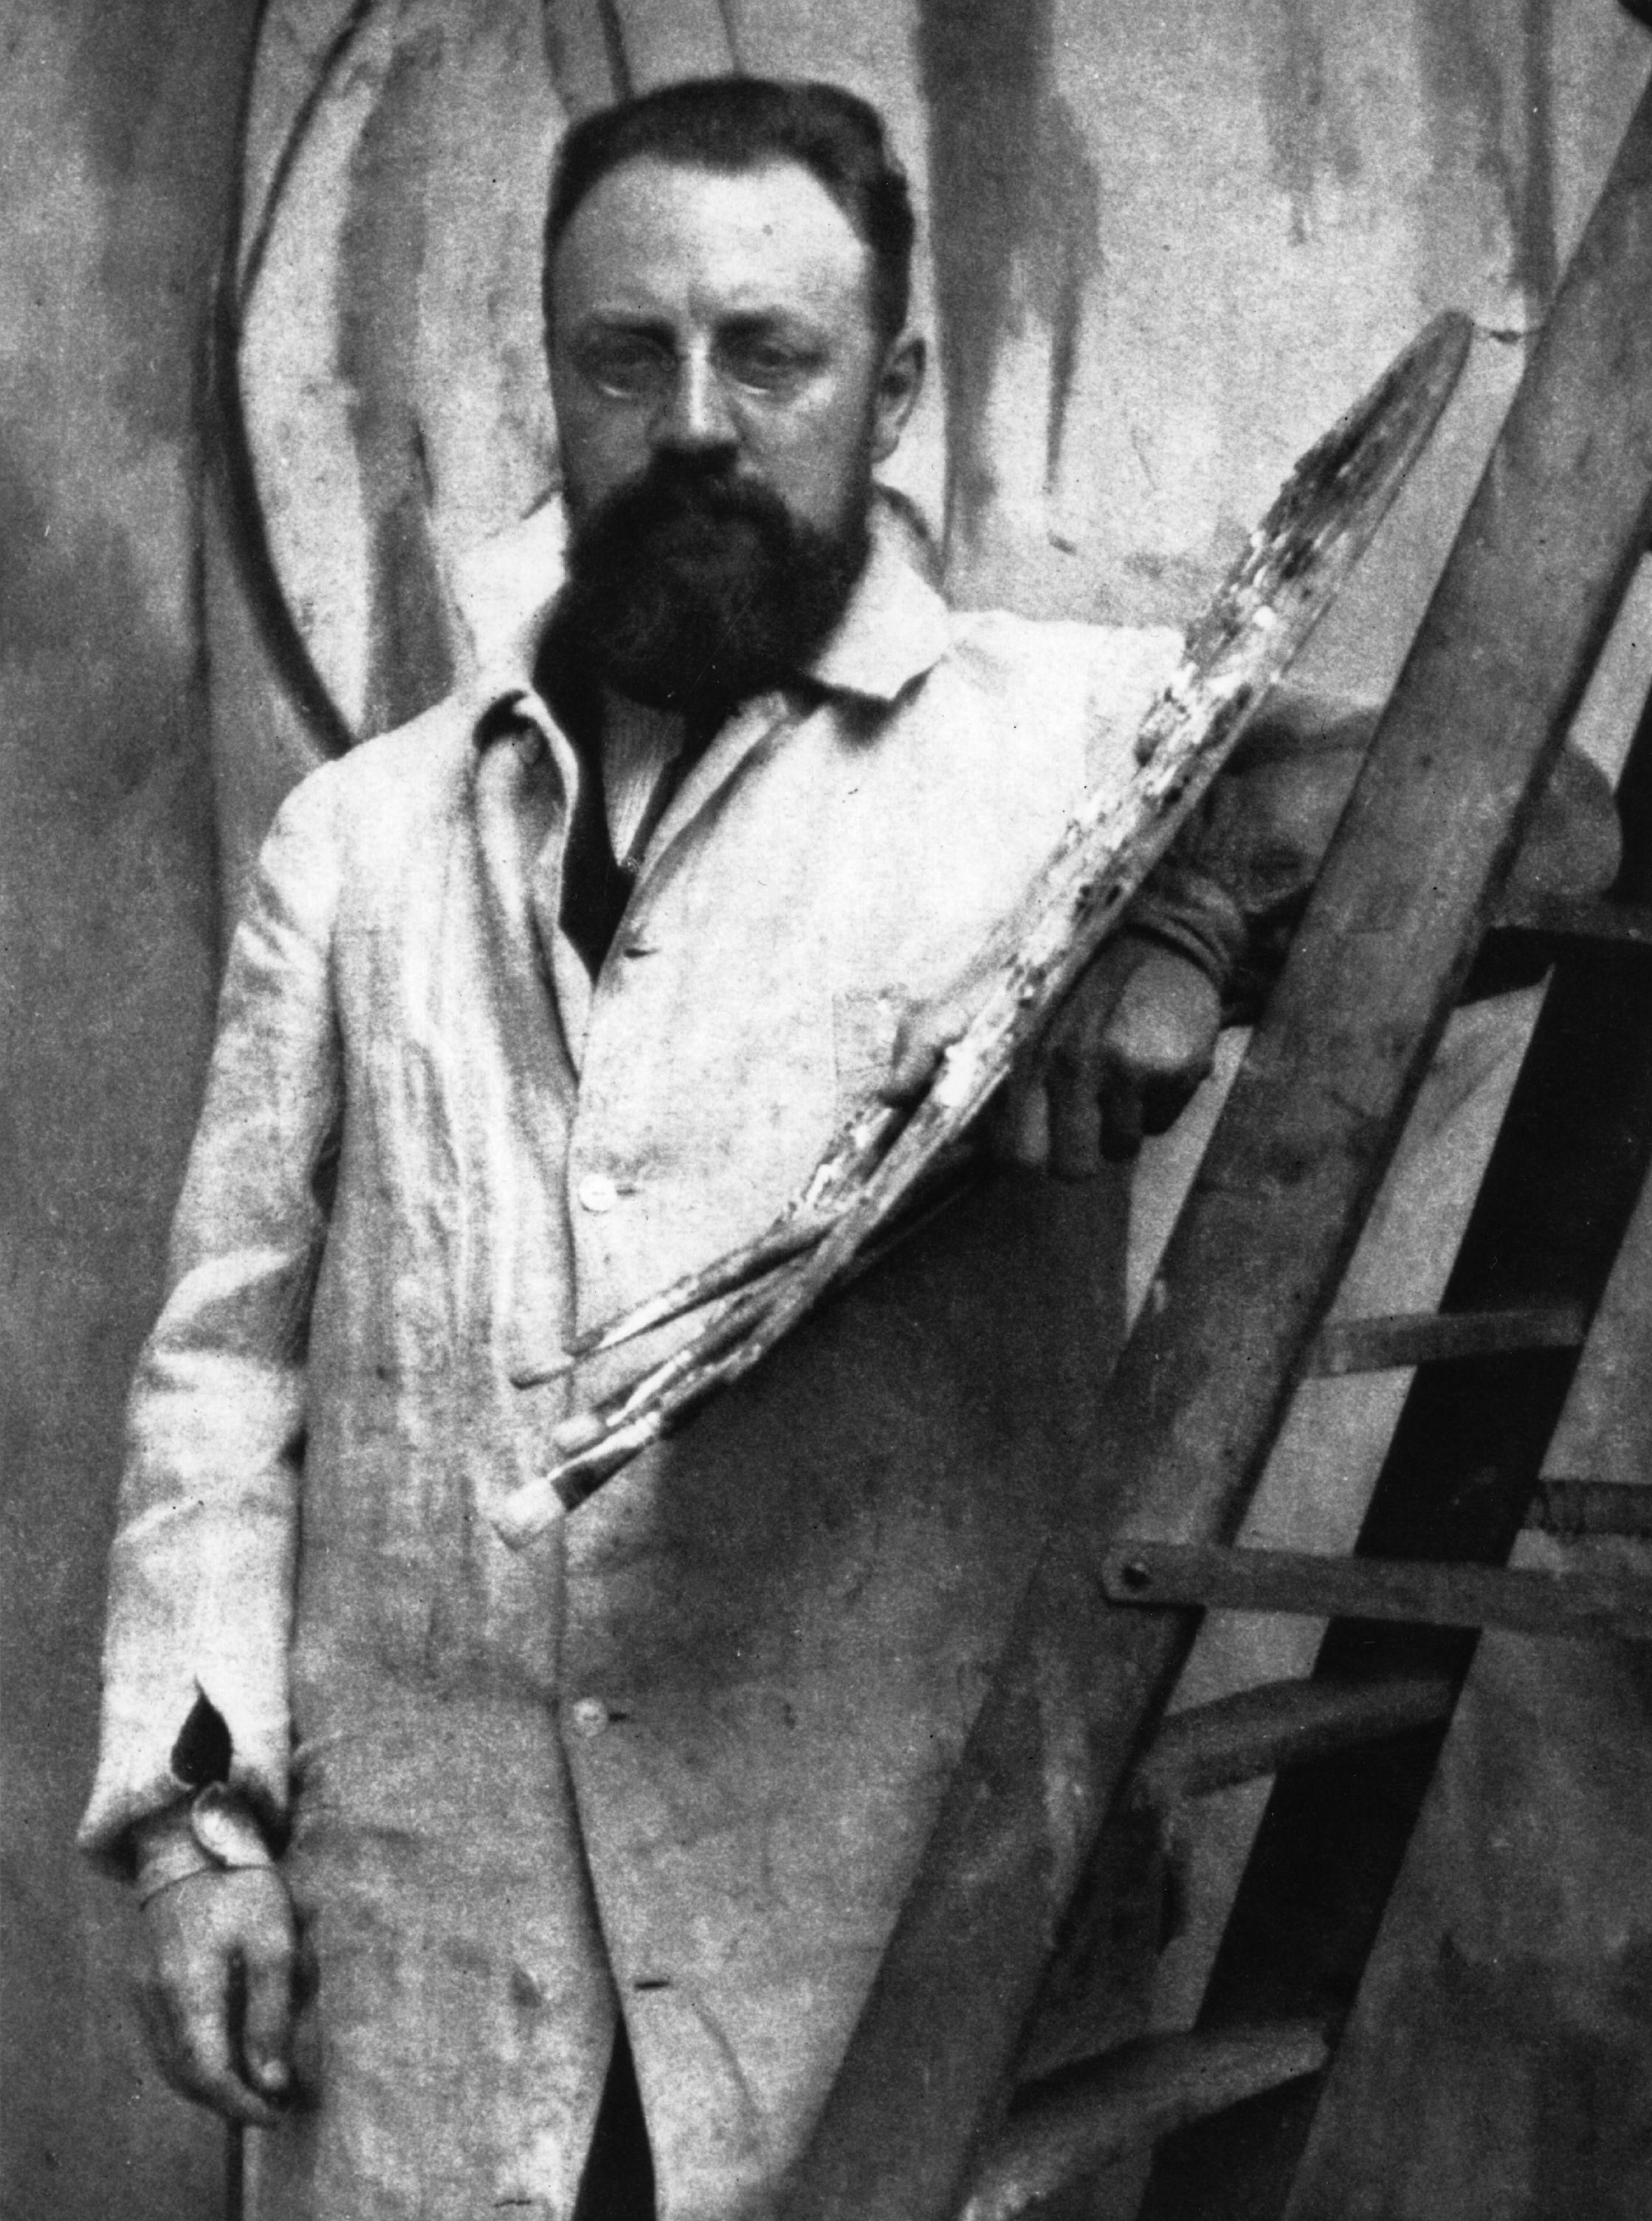 a biography and life work of henri emile benoit matisse a french painter Learn more about the long career and revolutionary work of henri  aka: henri  matisse full name: henri emile benoît matisse synopsis early life and  training breakthrough period success and fame late years related videos   and in 1921 he moved to the city of nice on the french riviera.